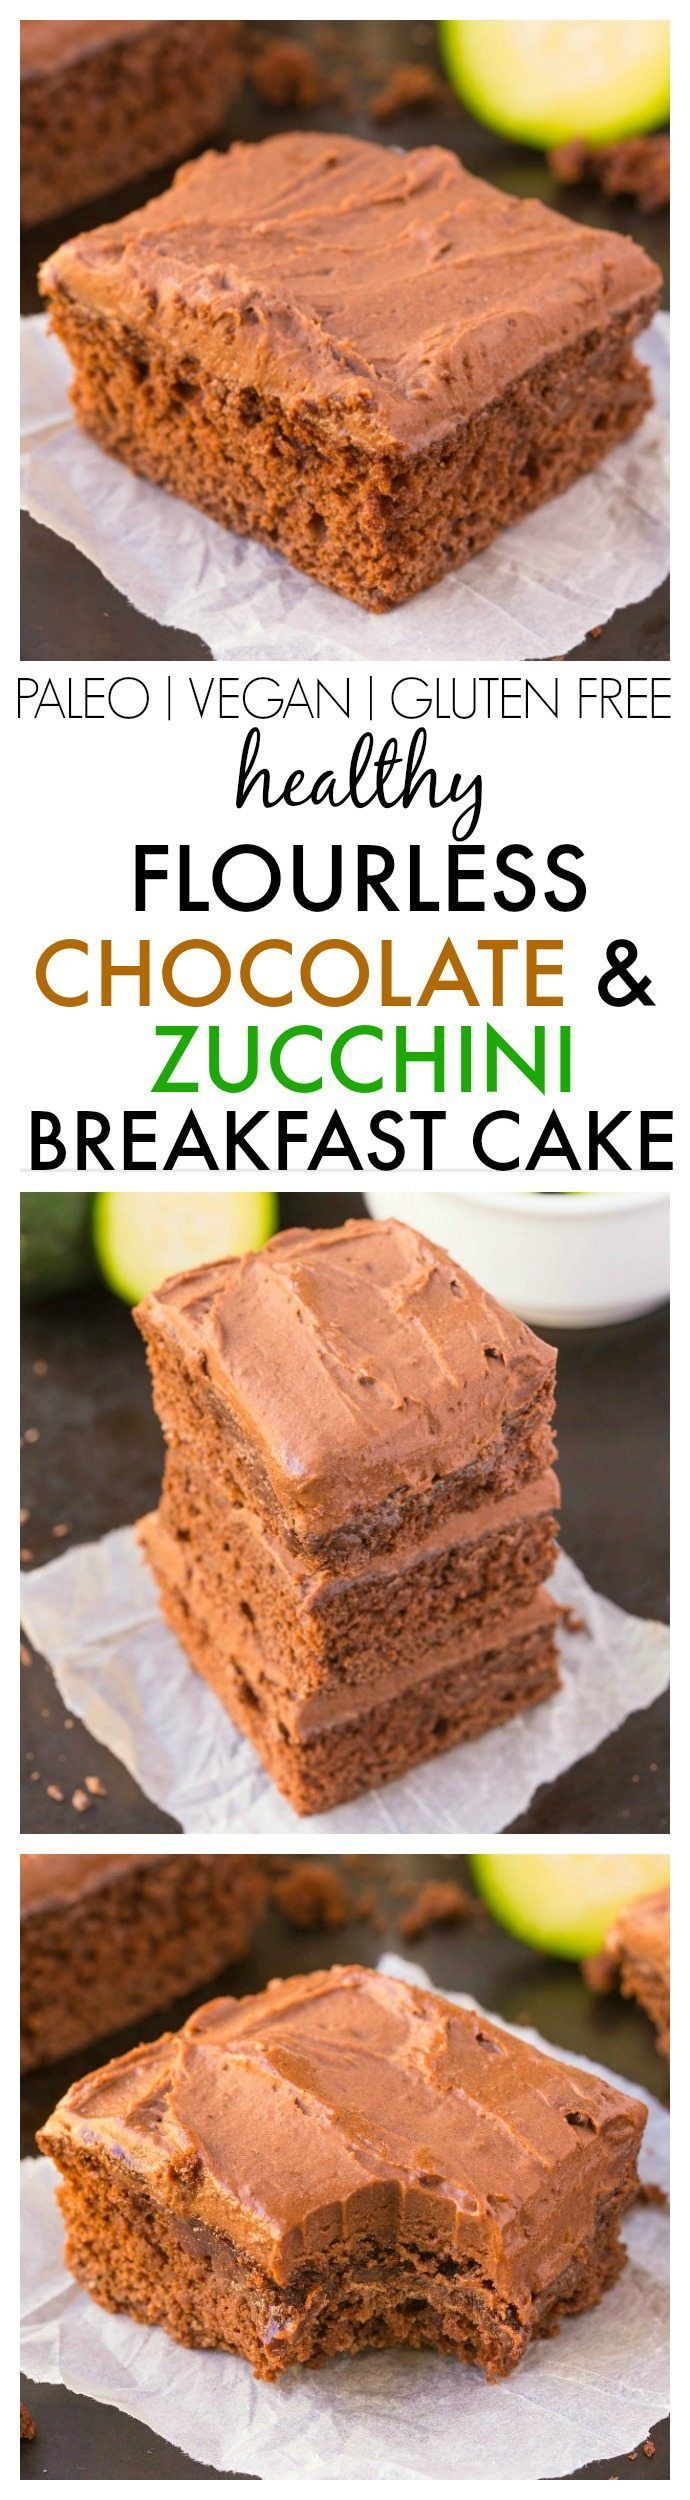 Healthy Flourless Chocolate Zucchini Breakfast Cake to keep you satisfied for hours! Tastes like a classic chocolate cake but made with NO butter, oil, flour or sugar AND an extra boost of veggies! {vegan, gluten free, paleo recipe}- http://thebigmansworld.com